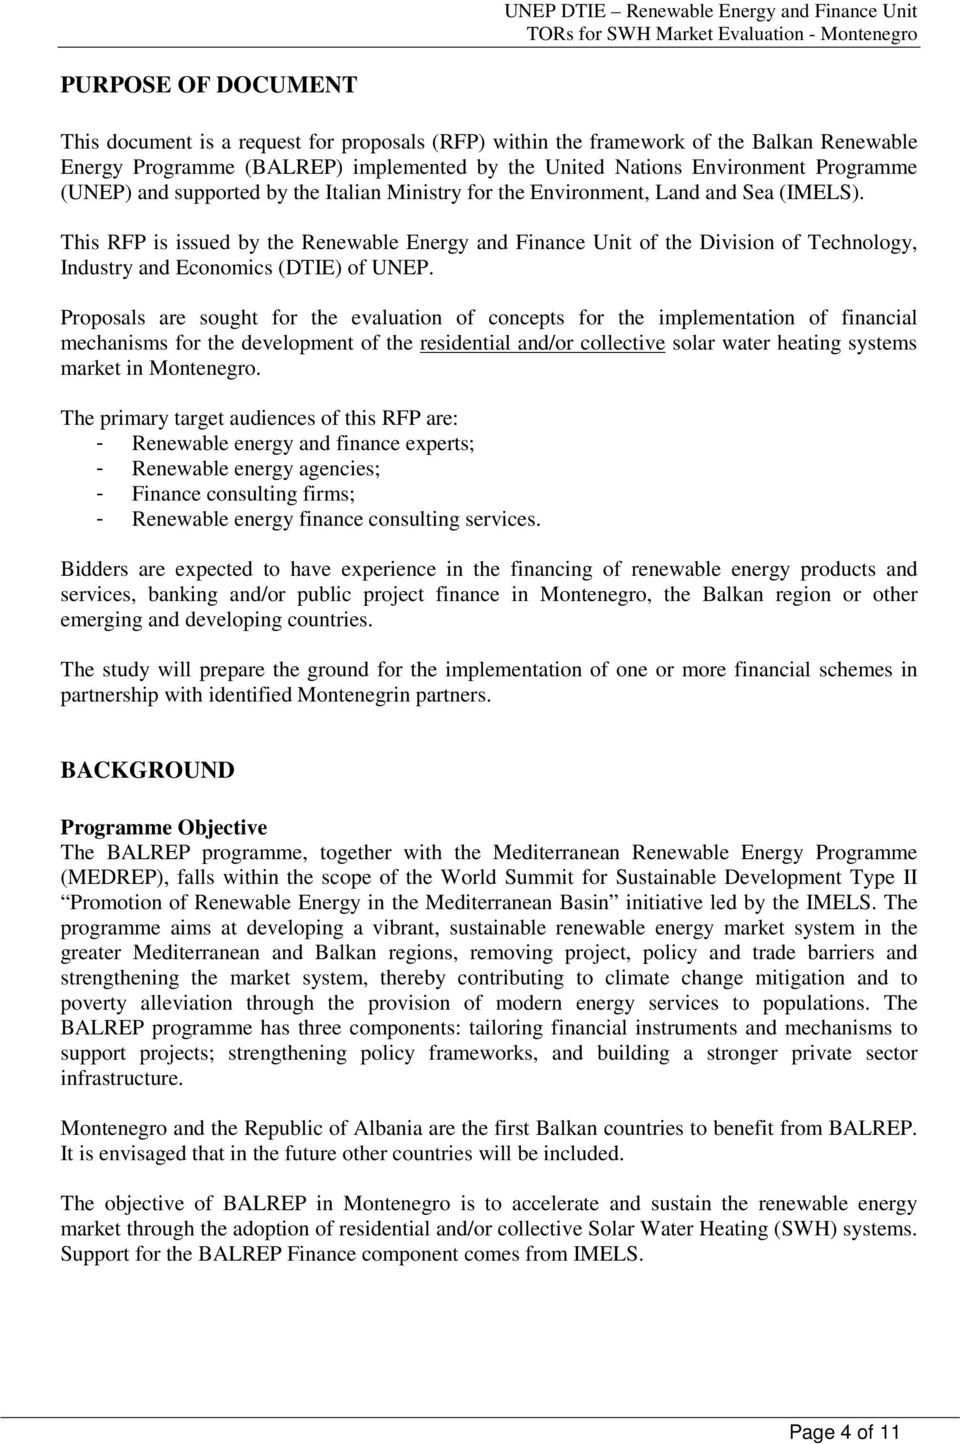 This RFP is issued by the Renewable Energy and Finance Unit of the Division of Technology, Industry and Economics (DTIE) of UNEP.